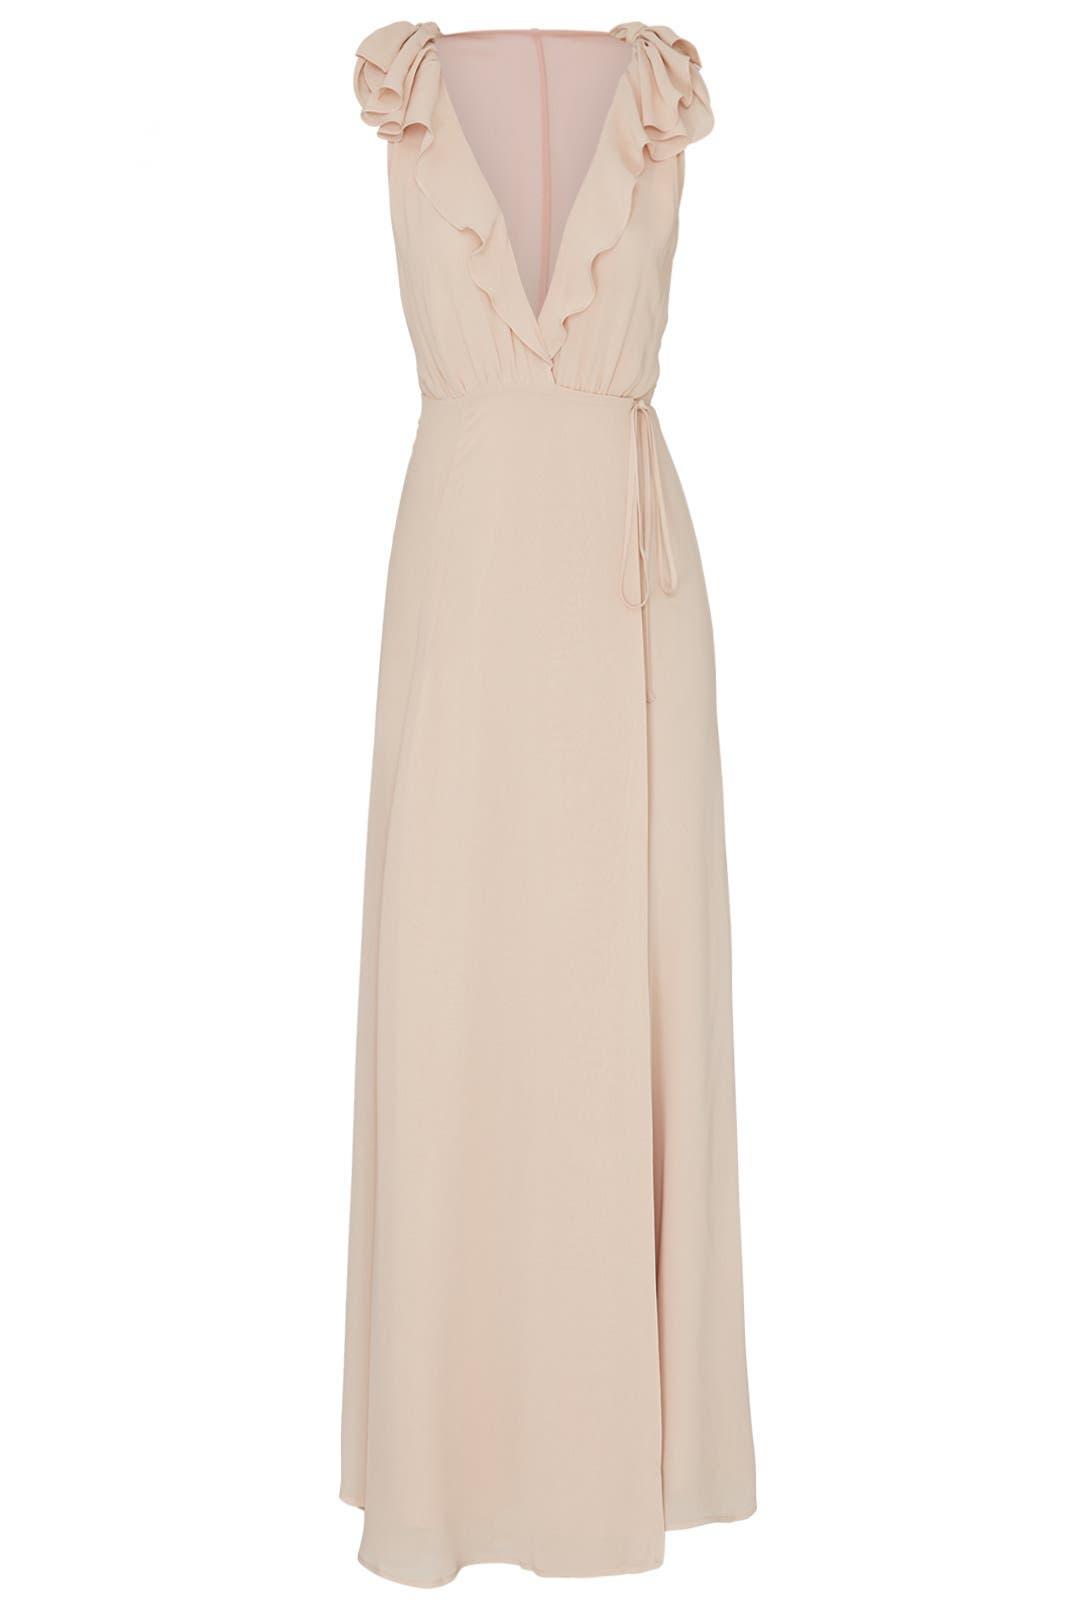 a1f6bb0daa90 Champagne Peppermint Dress by Reformation for $45 - $60 | Rent the Runway